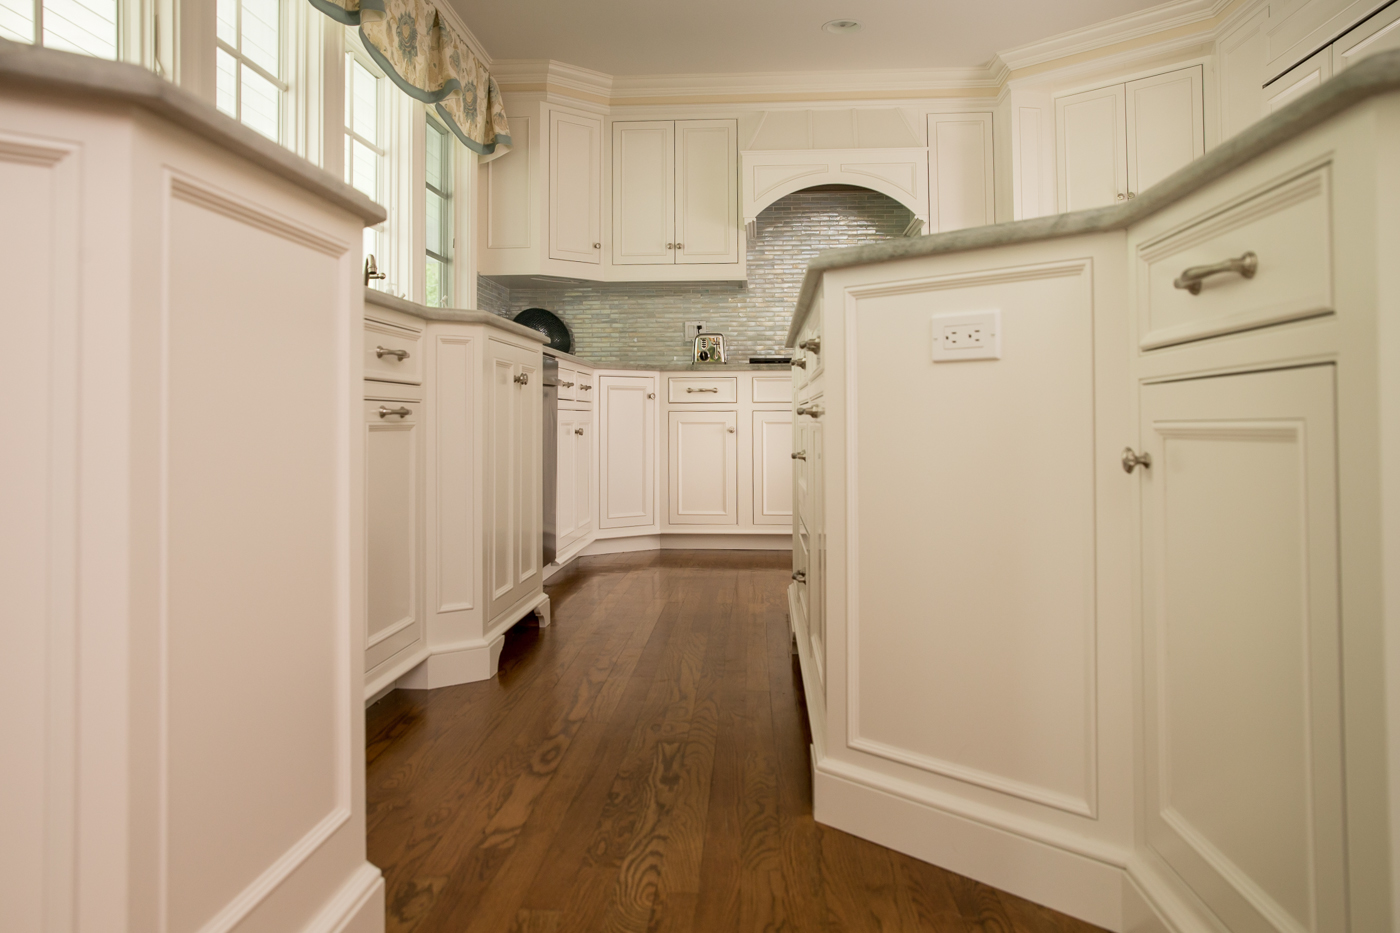 Kitchen Cabinet Electrical Outlets